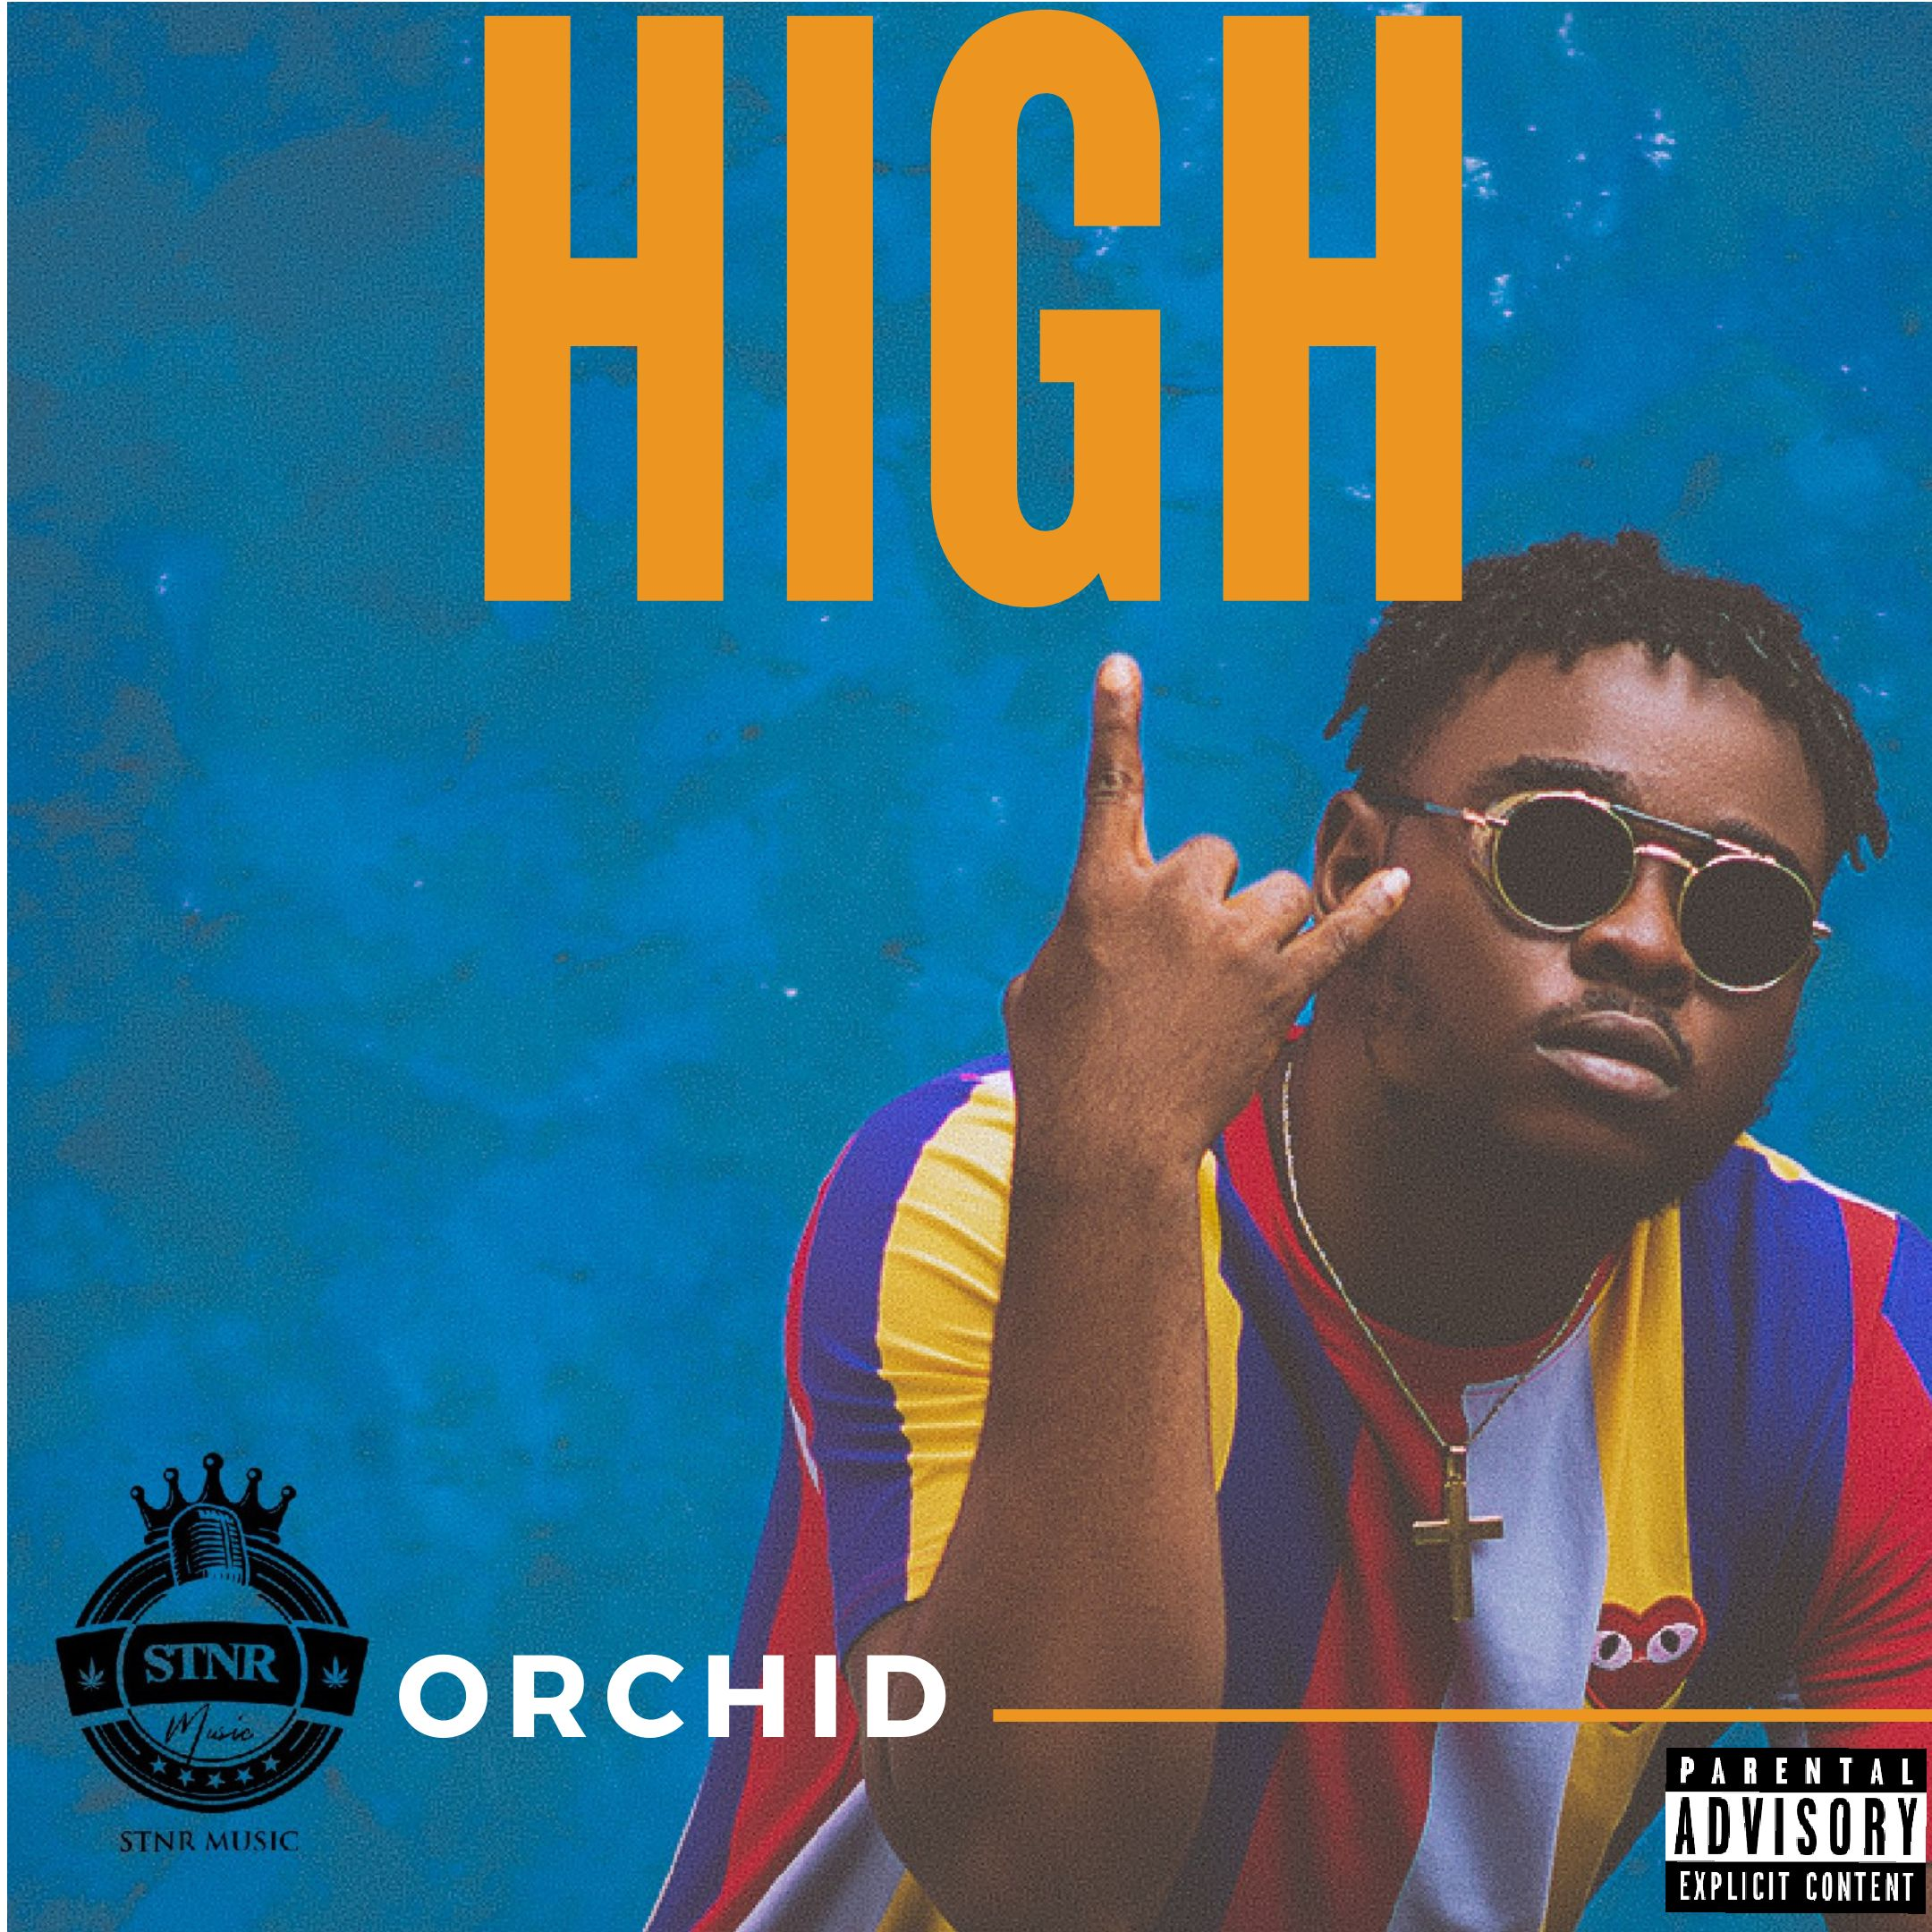 Orchid - High